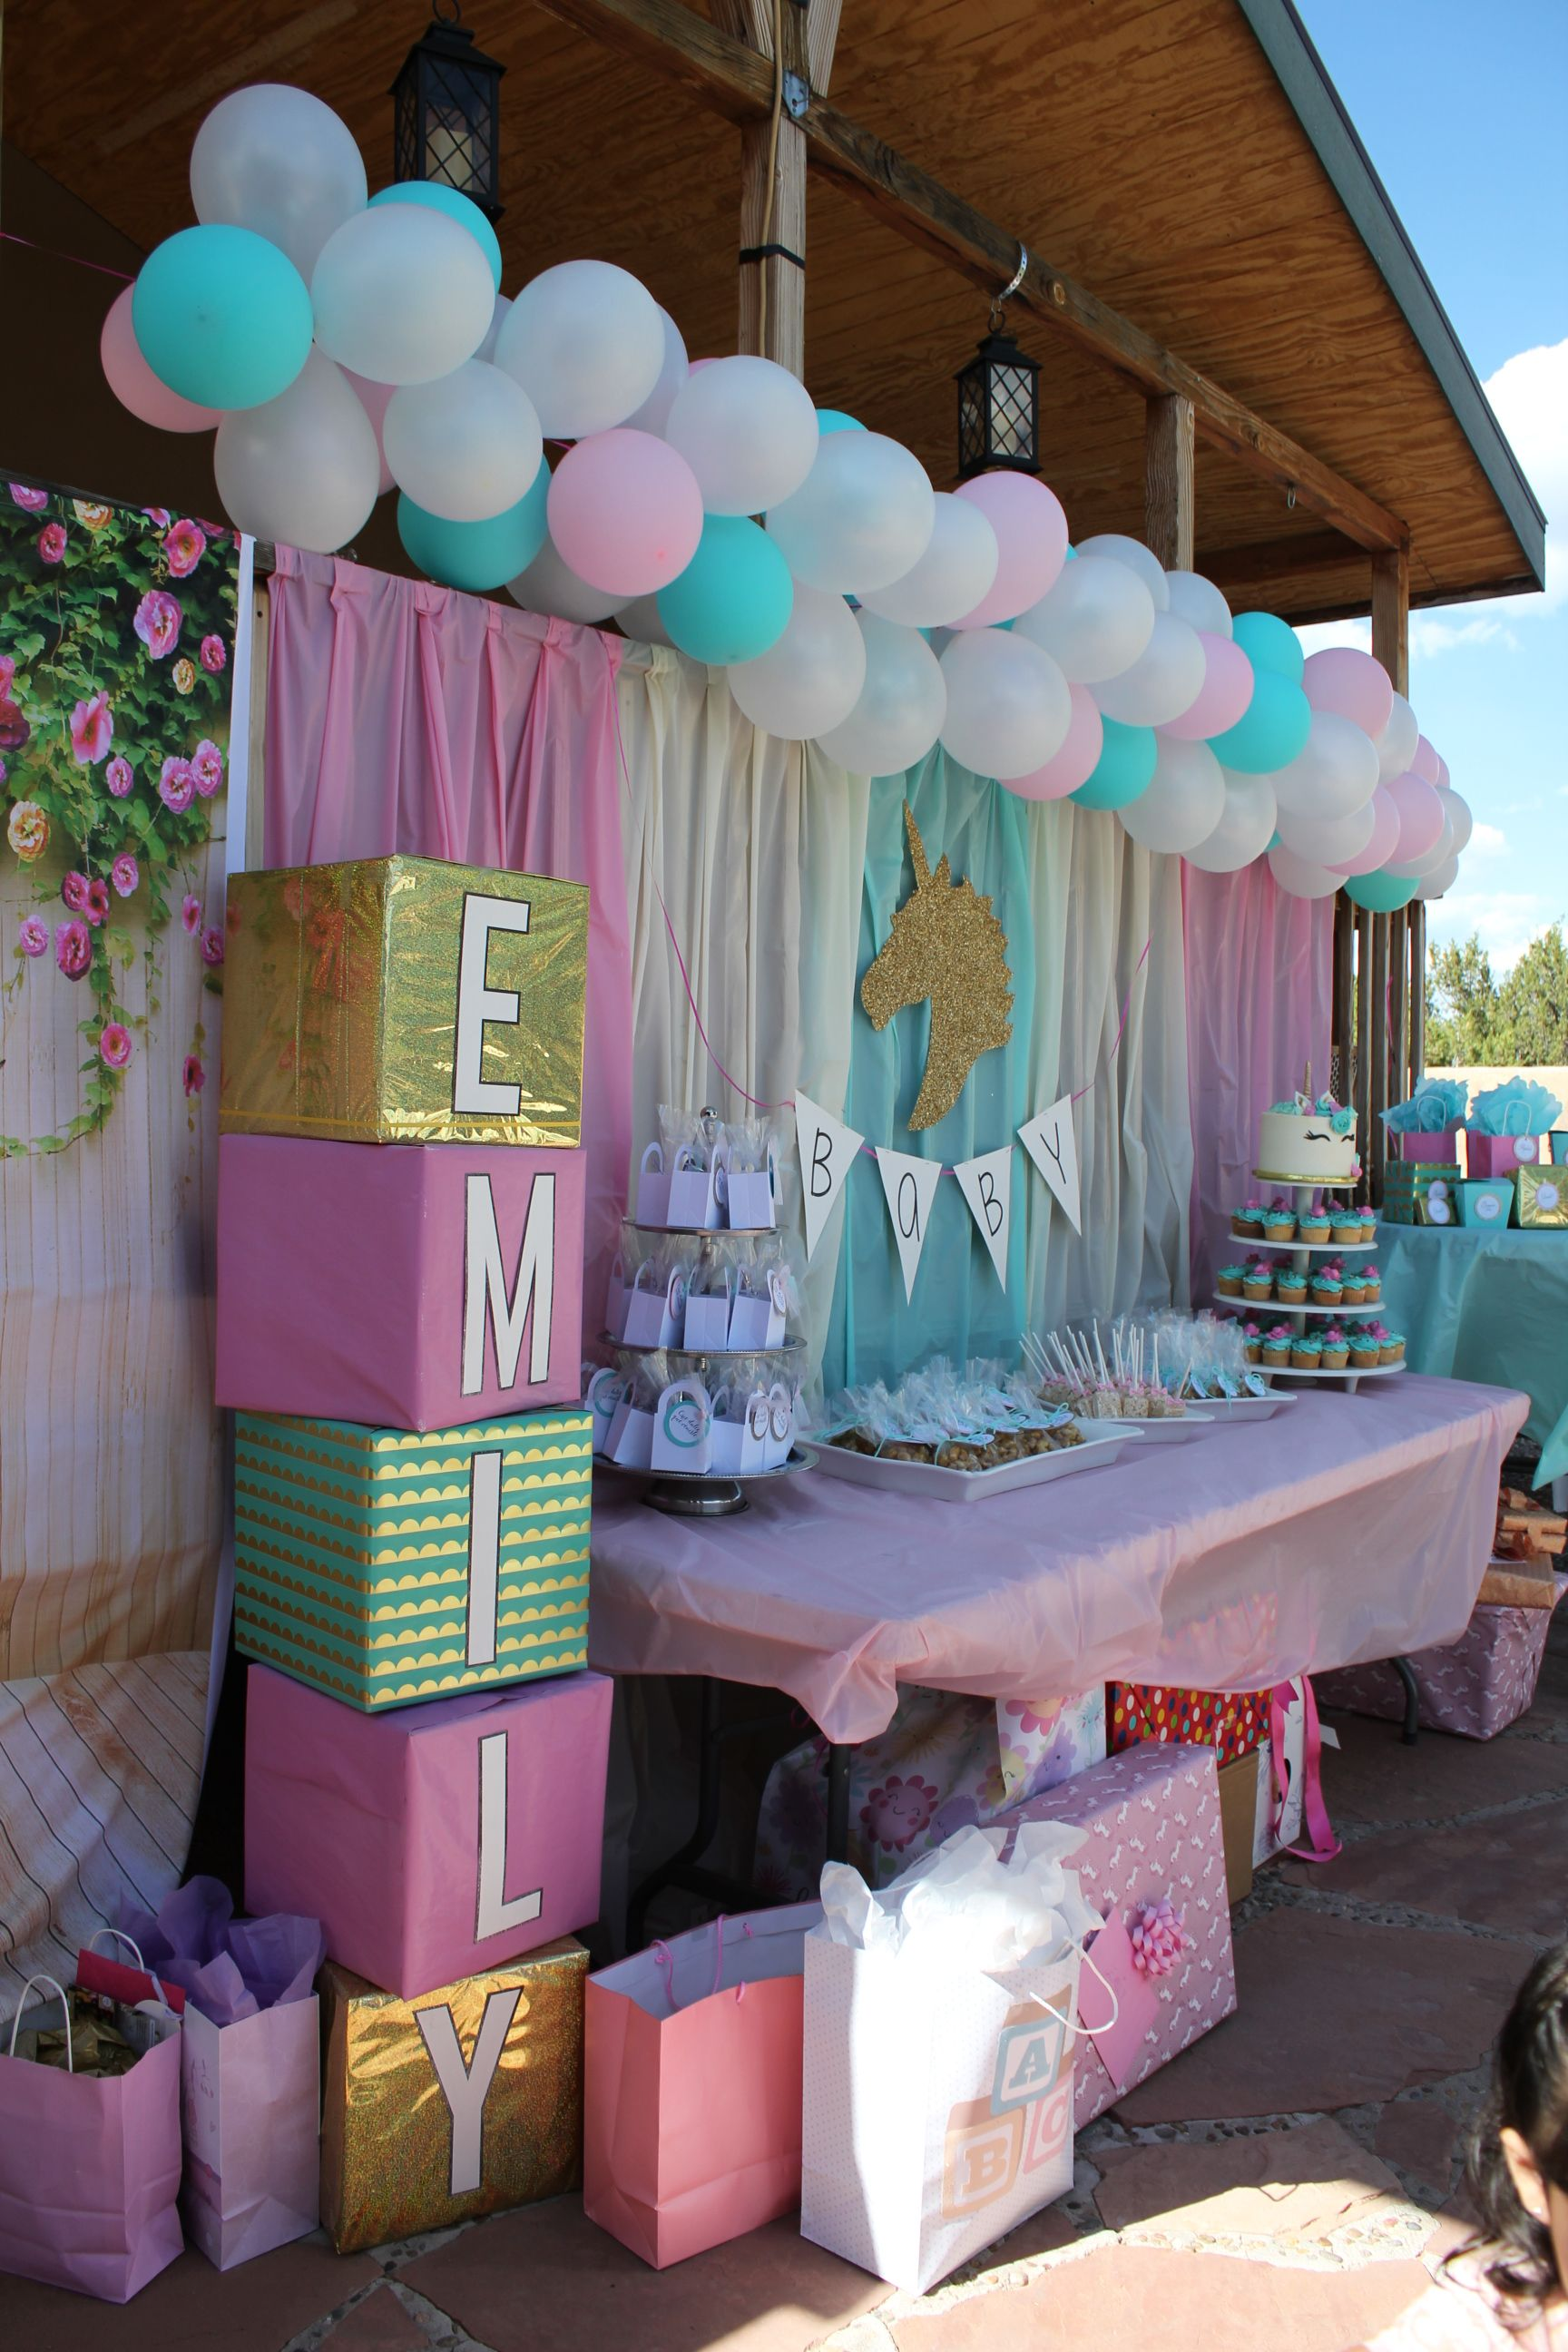 Unicorn Baby Shower Backdrop with baby's name on blocks